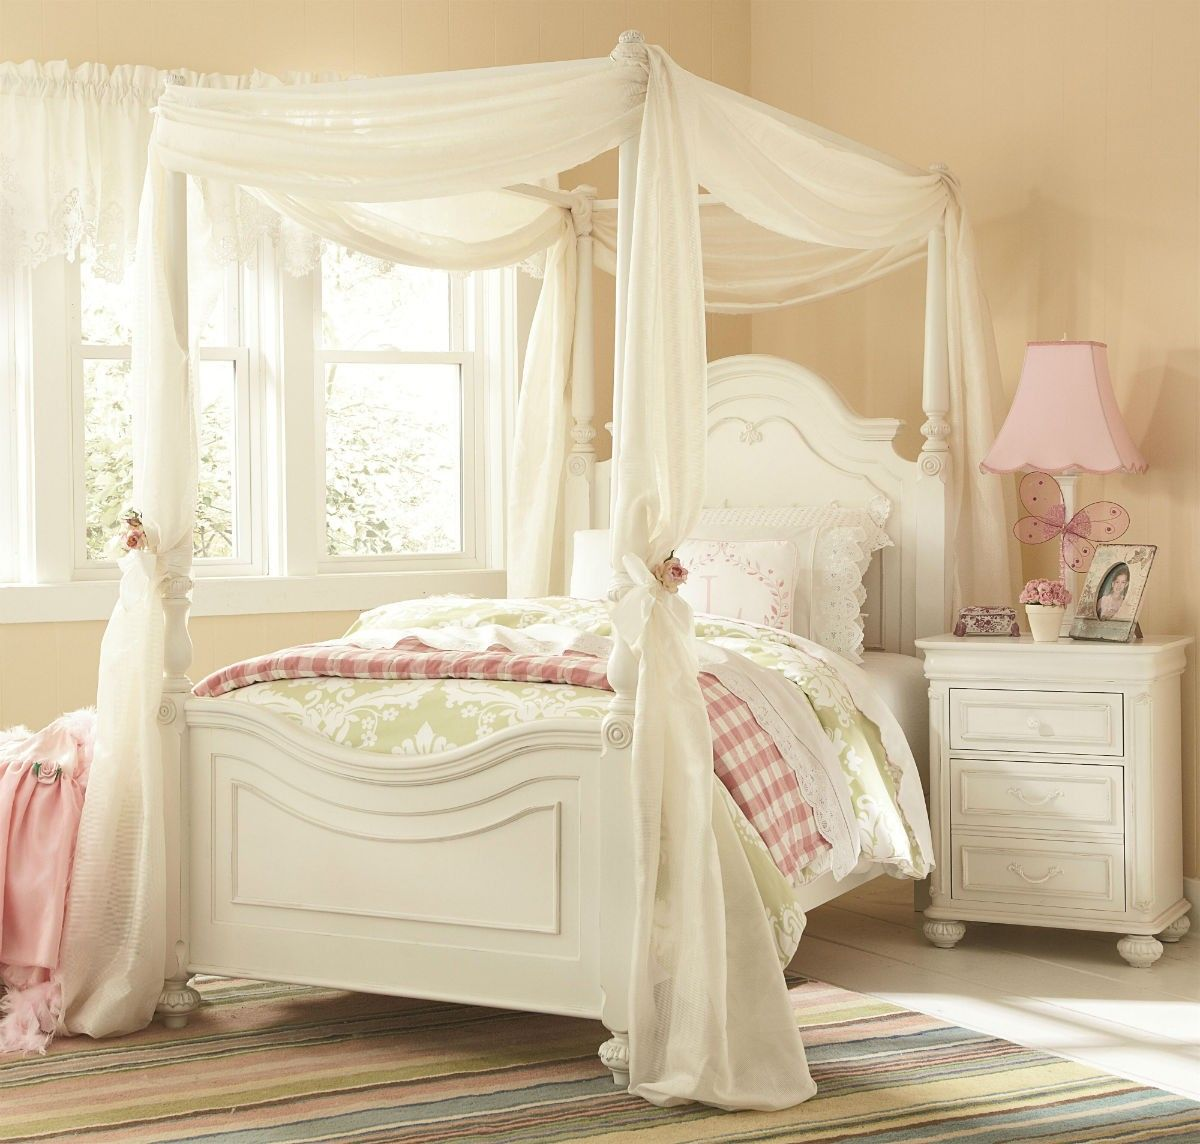 19 fabulous canopy bed designs for your little princess. Black Bedroom Furniture Sets. Home Design Ideas